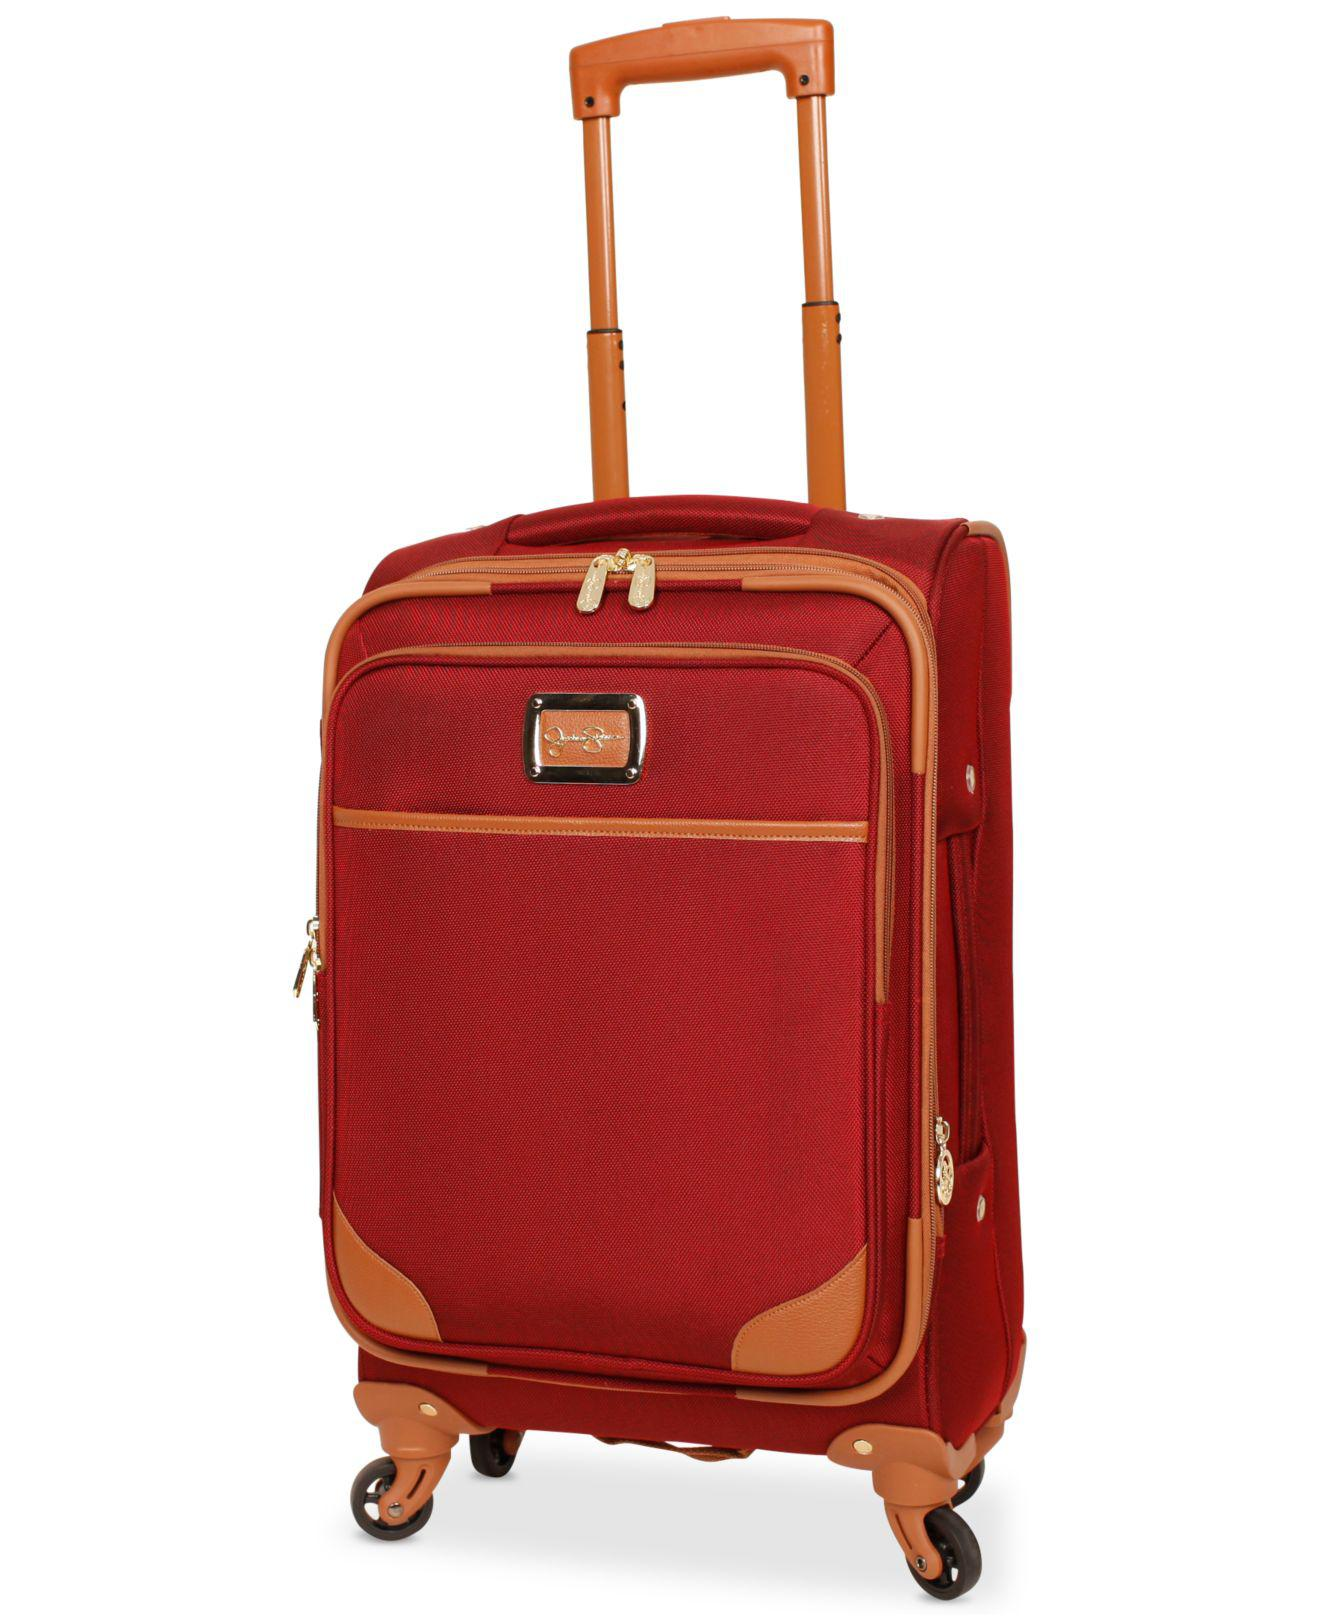 Jessica Simpson Luggage Sets